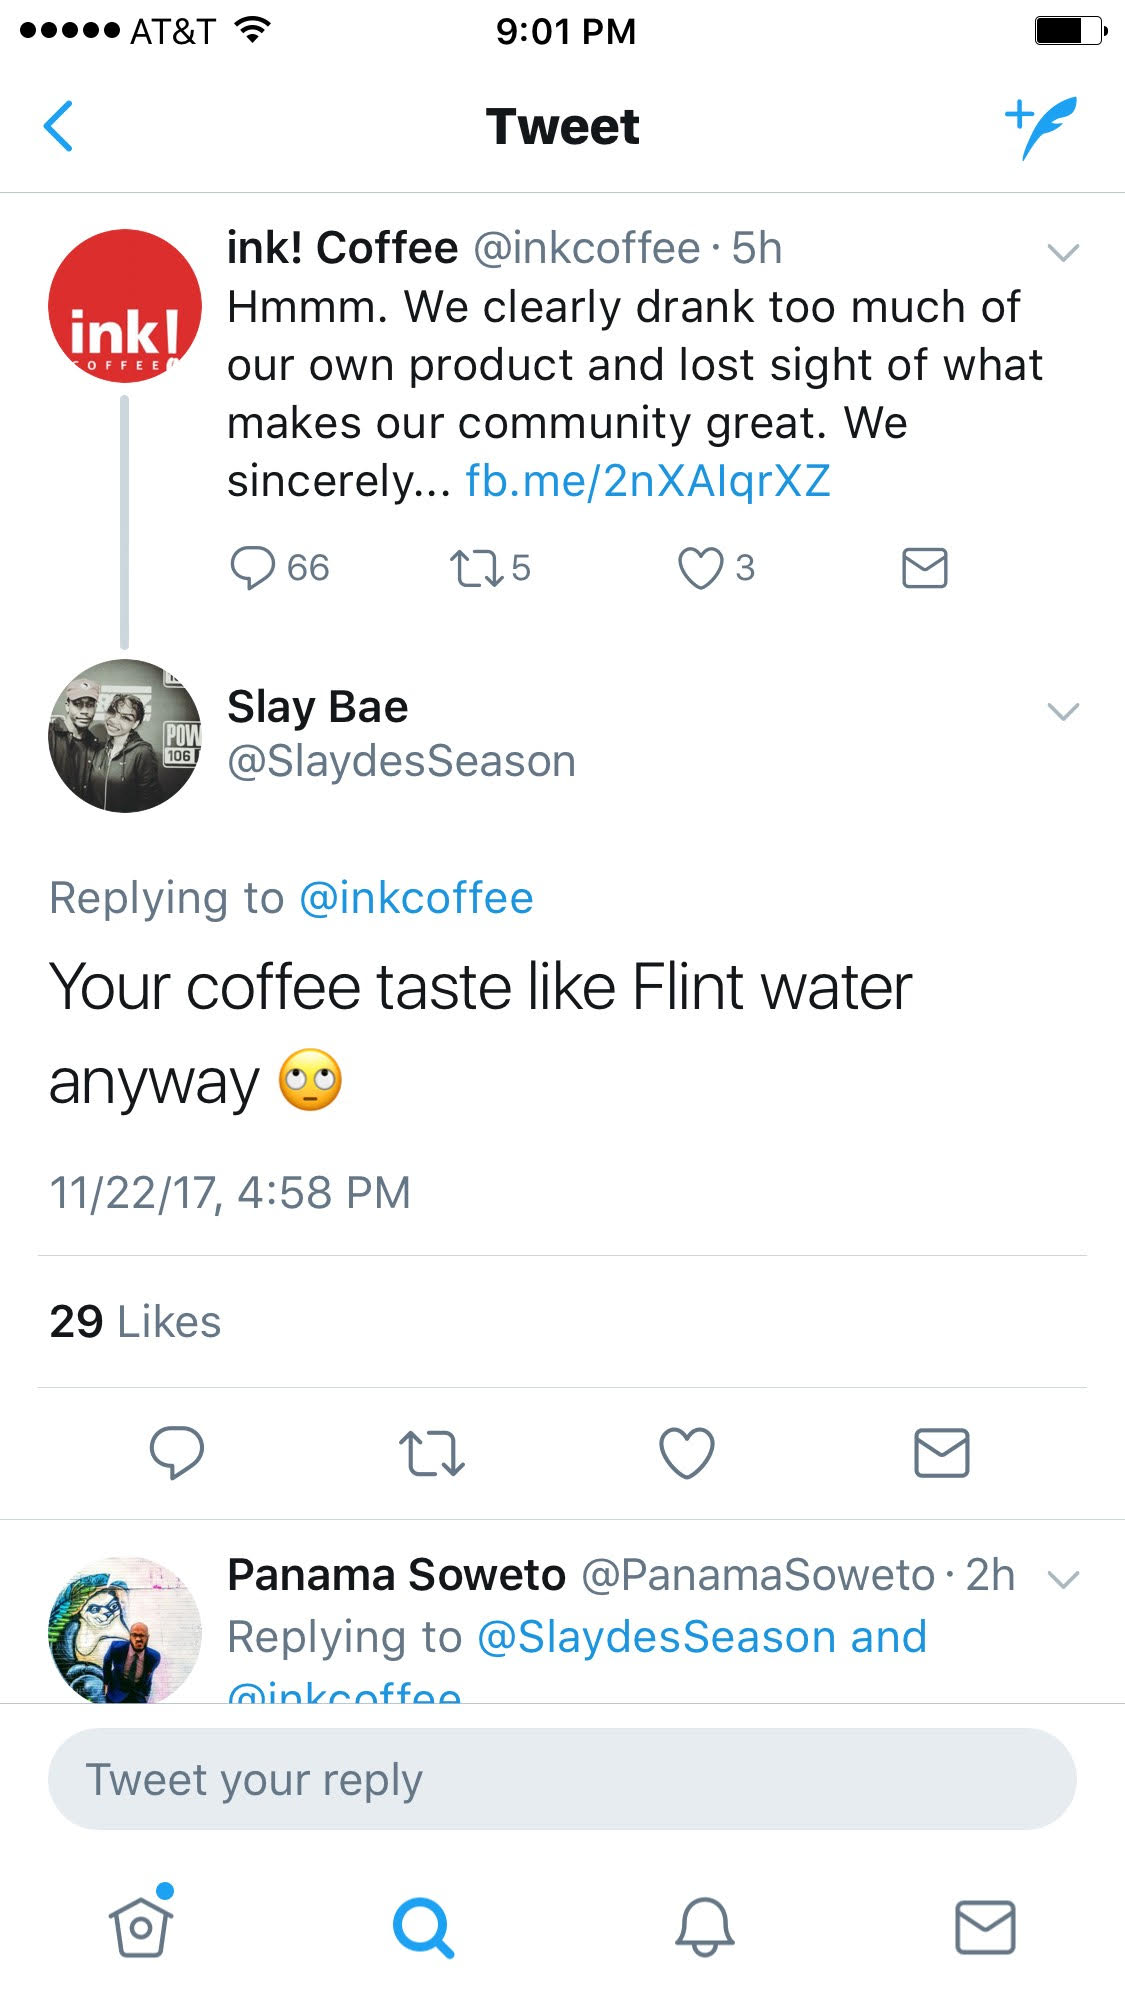 Ink Coffee Twitter response